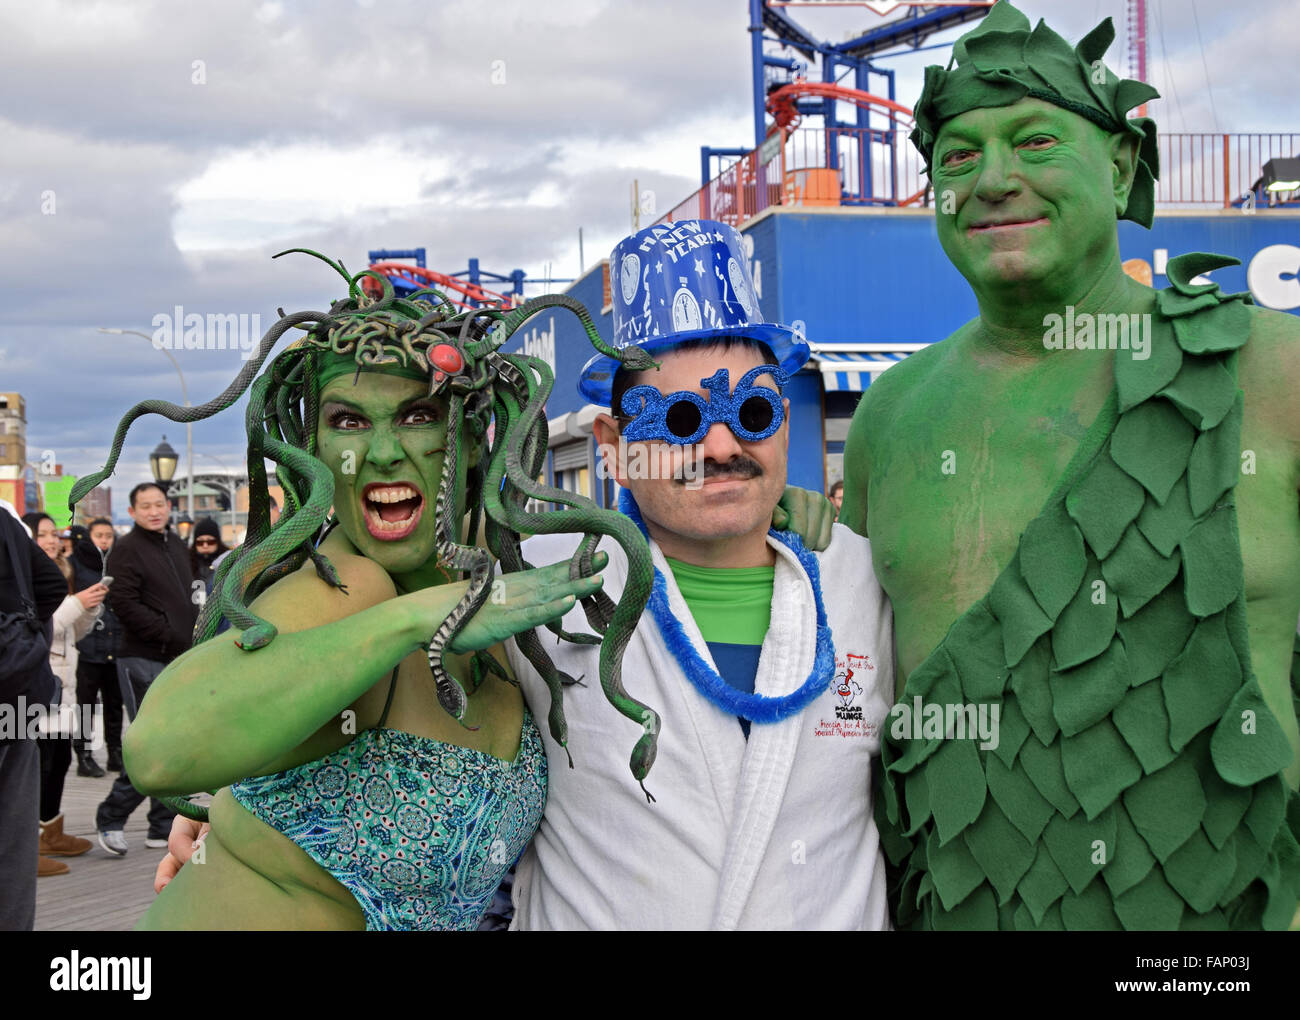 3 people in elaborate costumes on the boardwalk in Coney Island on New Years prior the the Polar Bear Club swim. - Stock Image